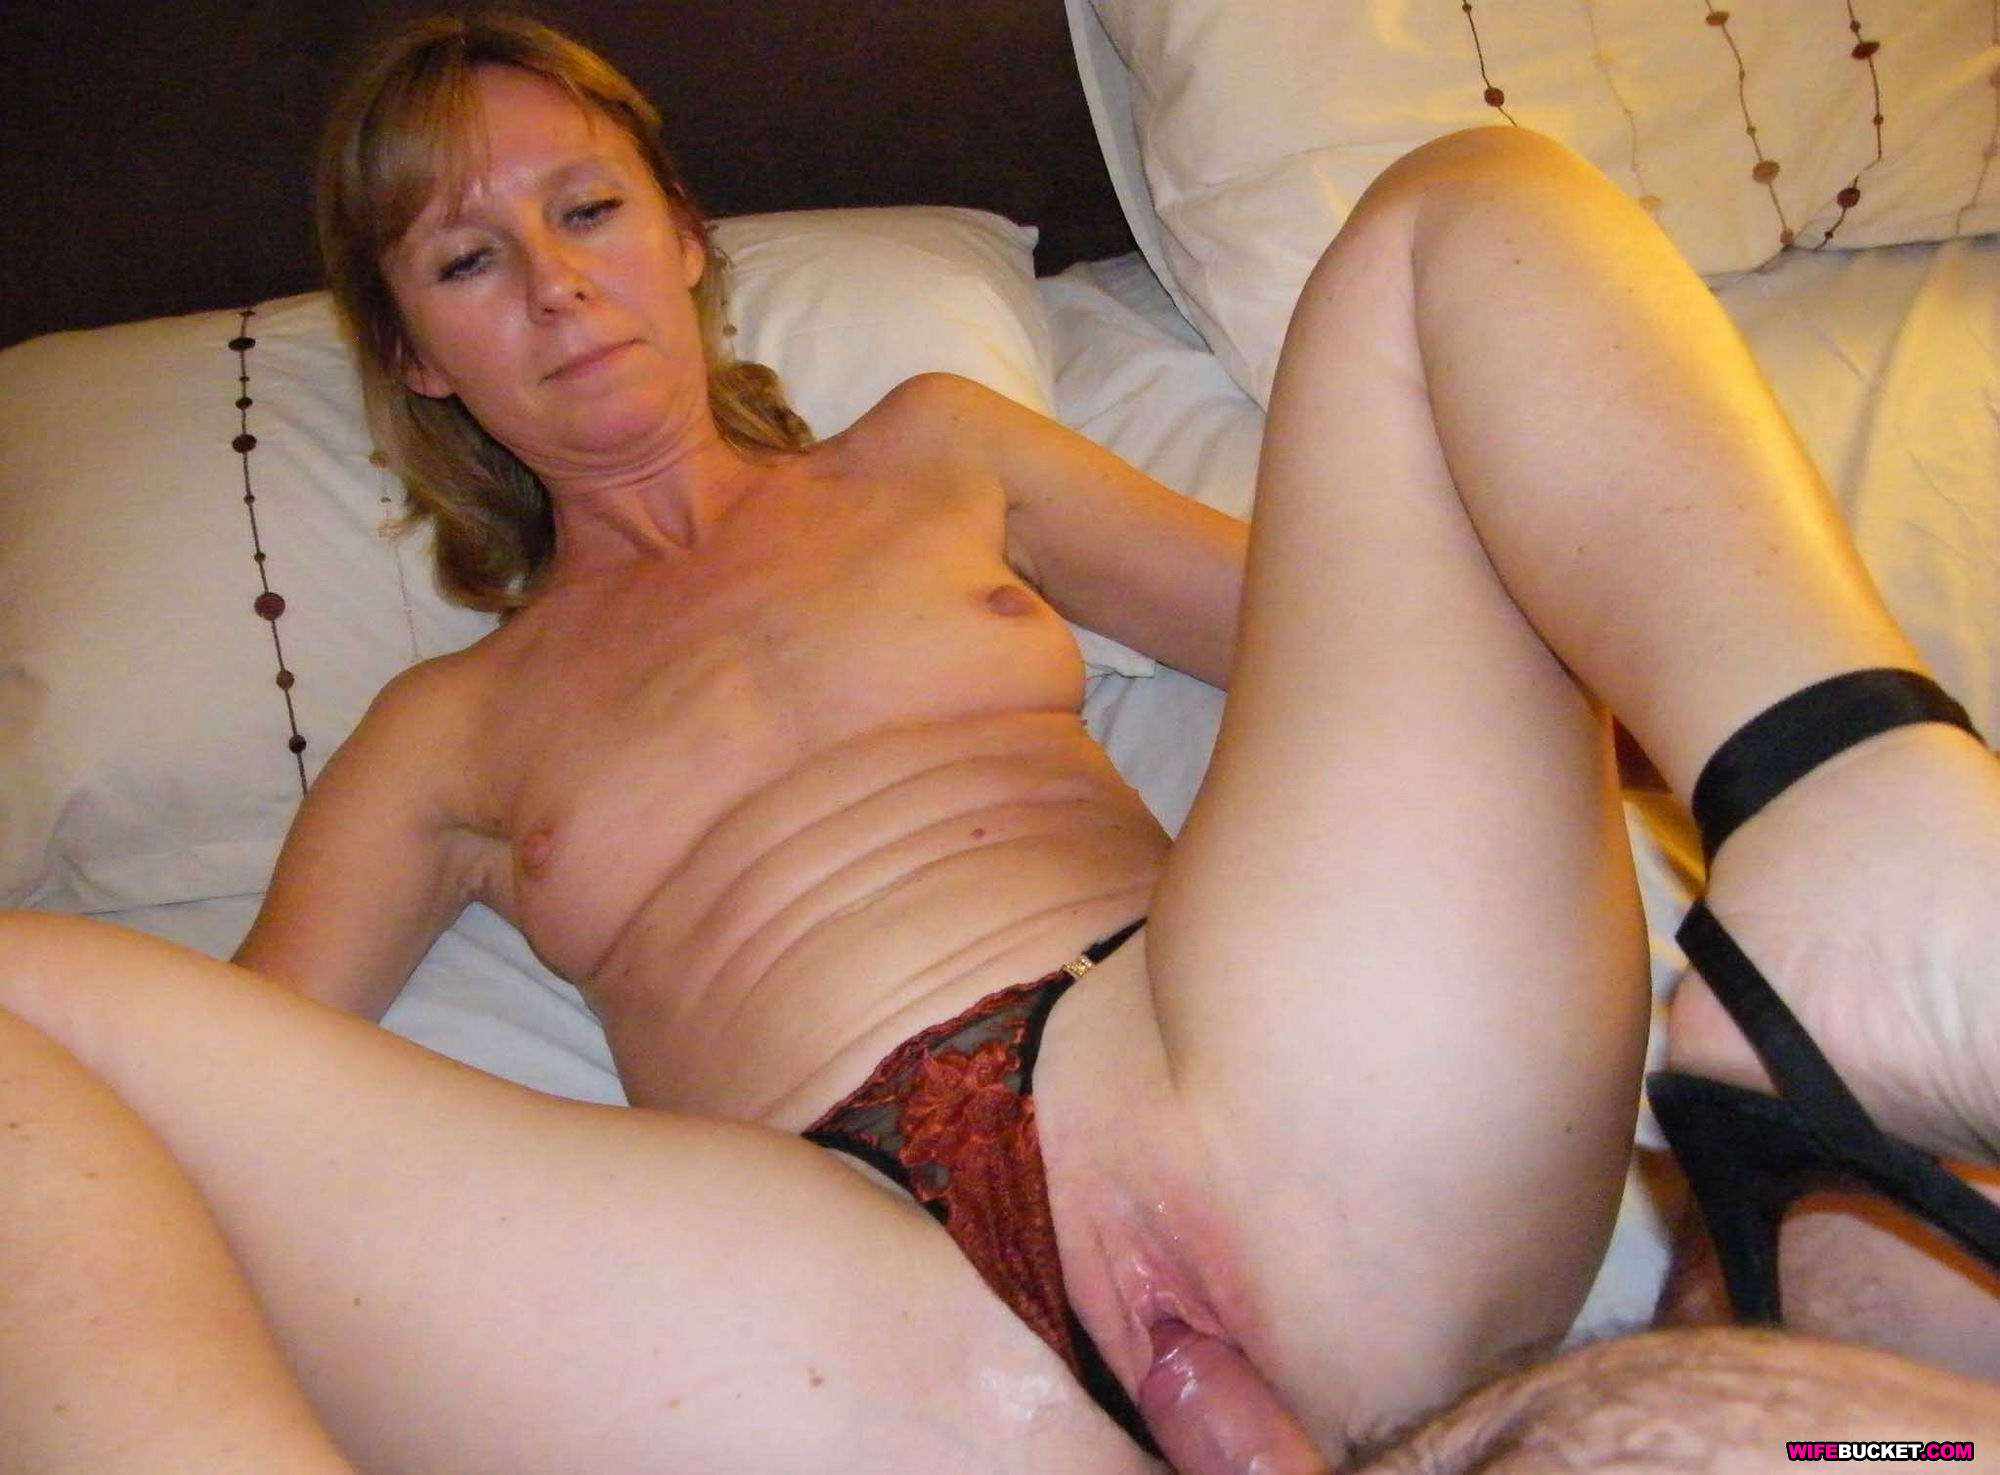 Amateur threesome with two nasty beginners 1